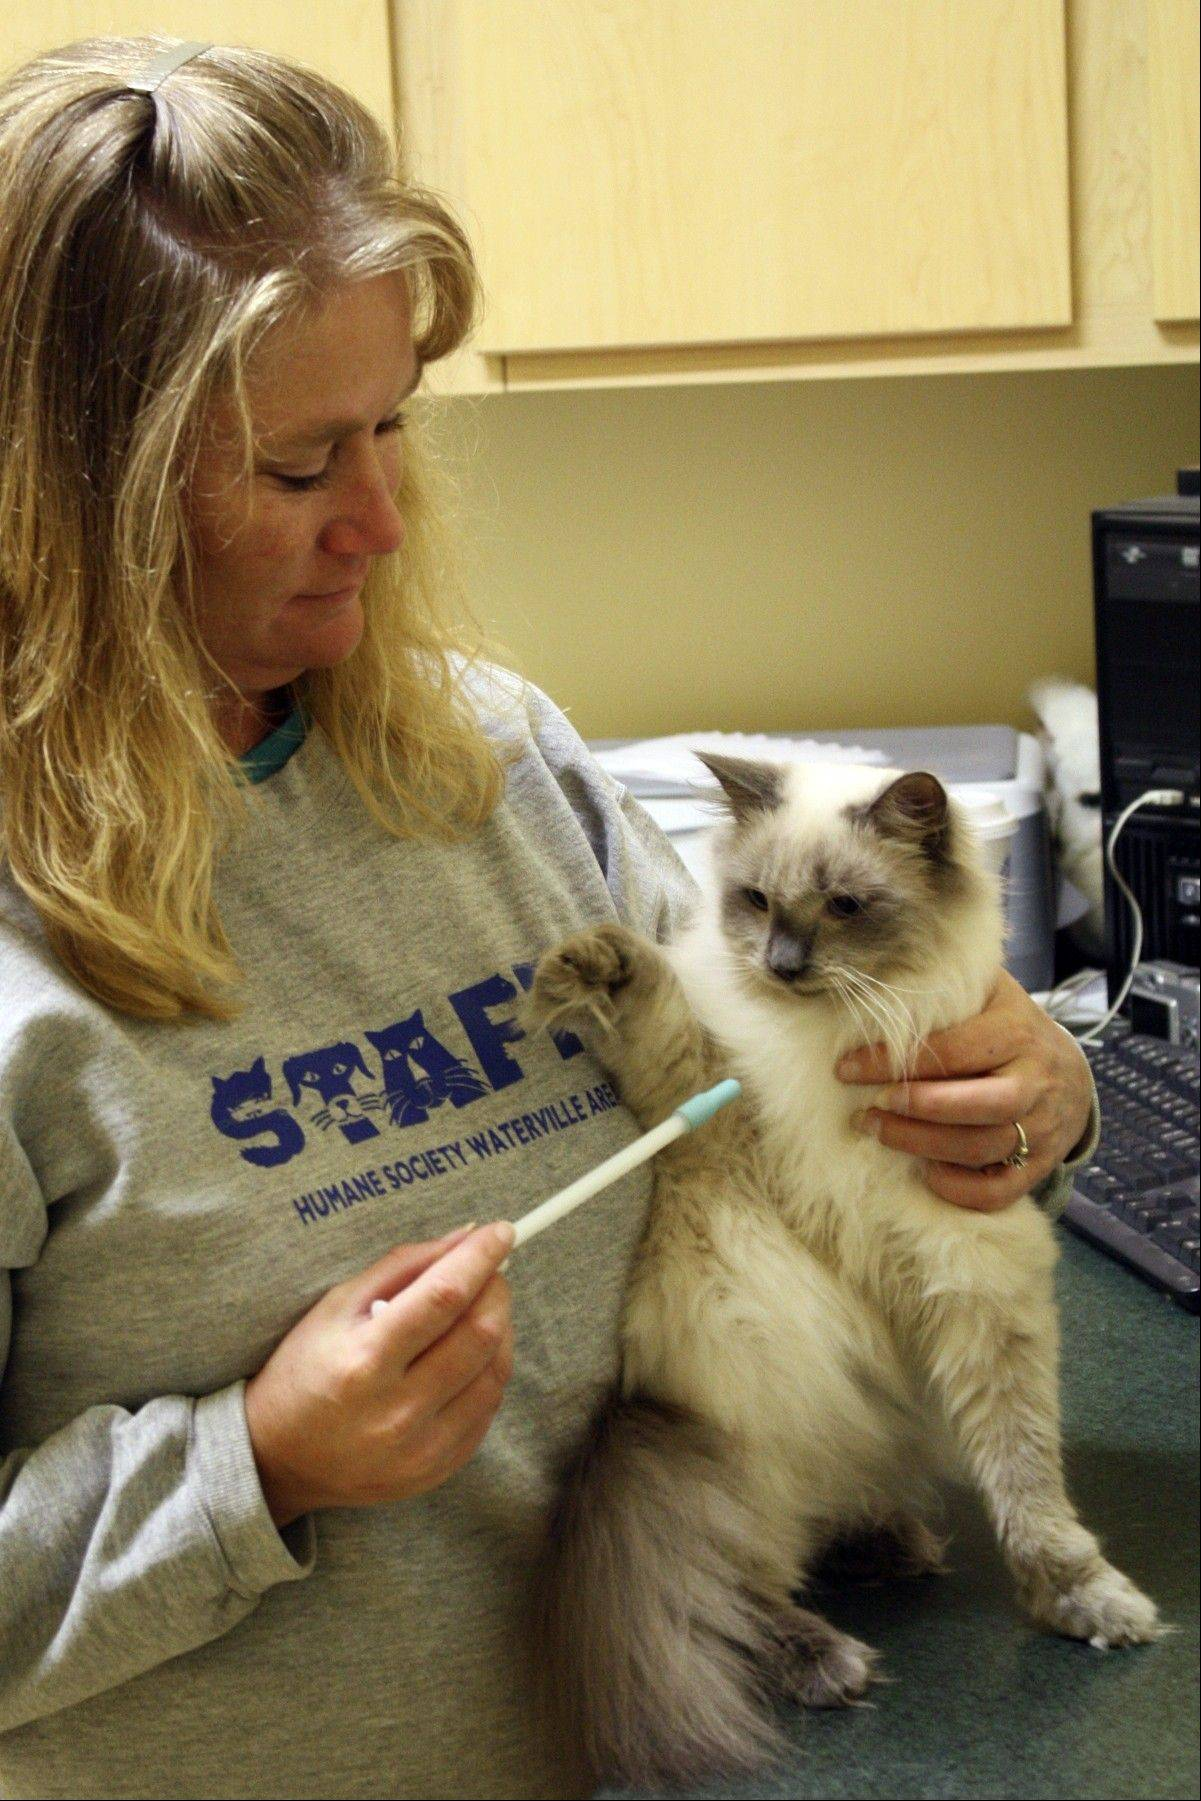 Humane Society of Waterville animal care technician Susan Wyman ttempts to give shelter cat Birch a pill Tuesday in Waterville, Maine. Wyman is using a pill syringe to administer the pill quickly. There is no question cats are harder to medicate than dogs.